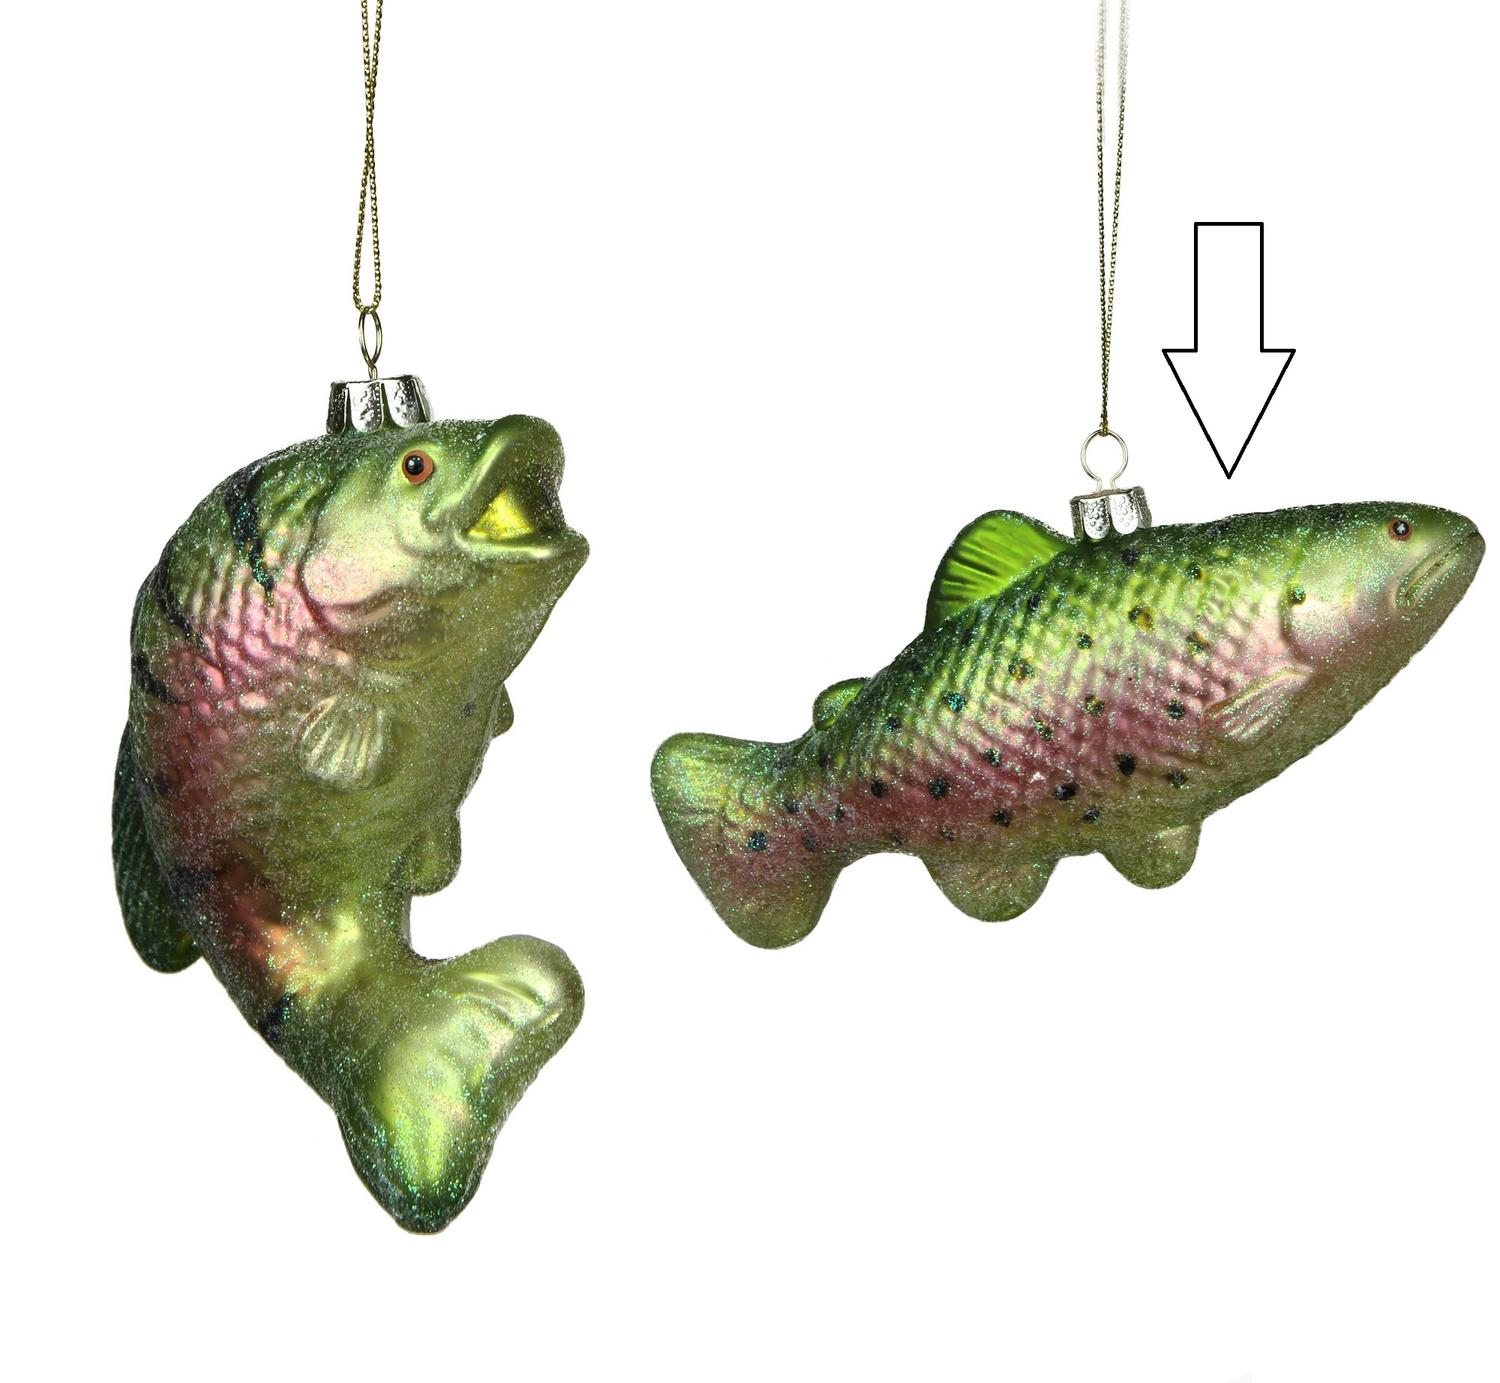 ''3'''' Under the Sea Glittered Metallic Green Spotted Fish Glass Christmas ornament''